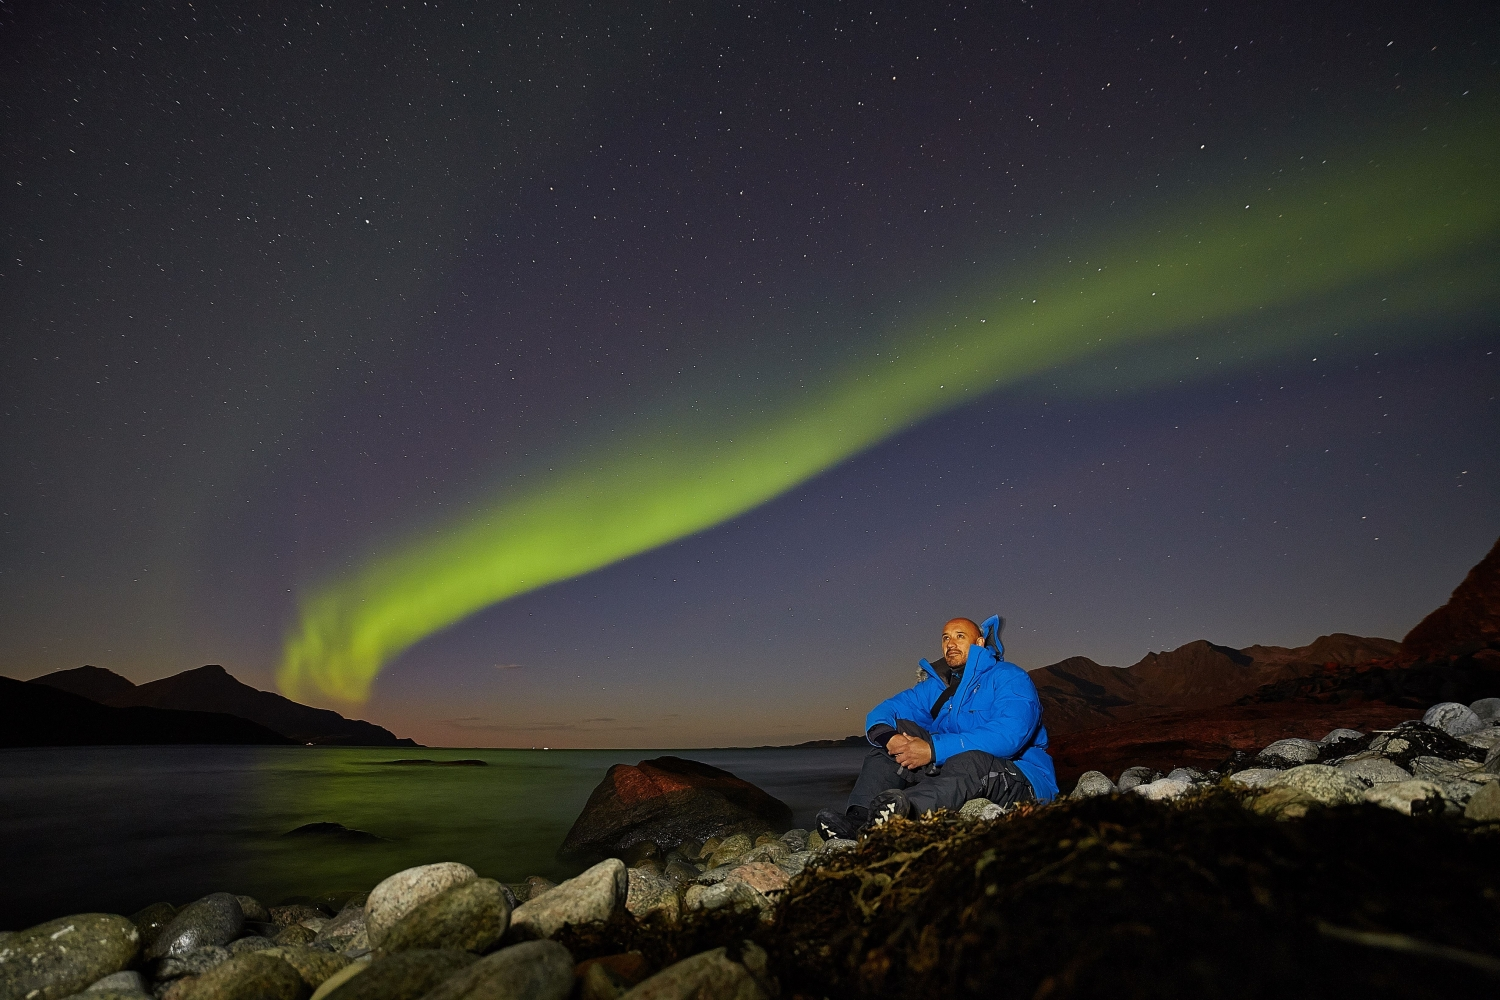 francisco is sitting by the sea with the aurora in the background